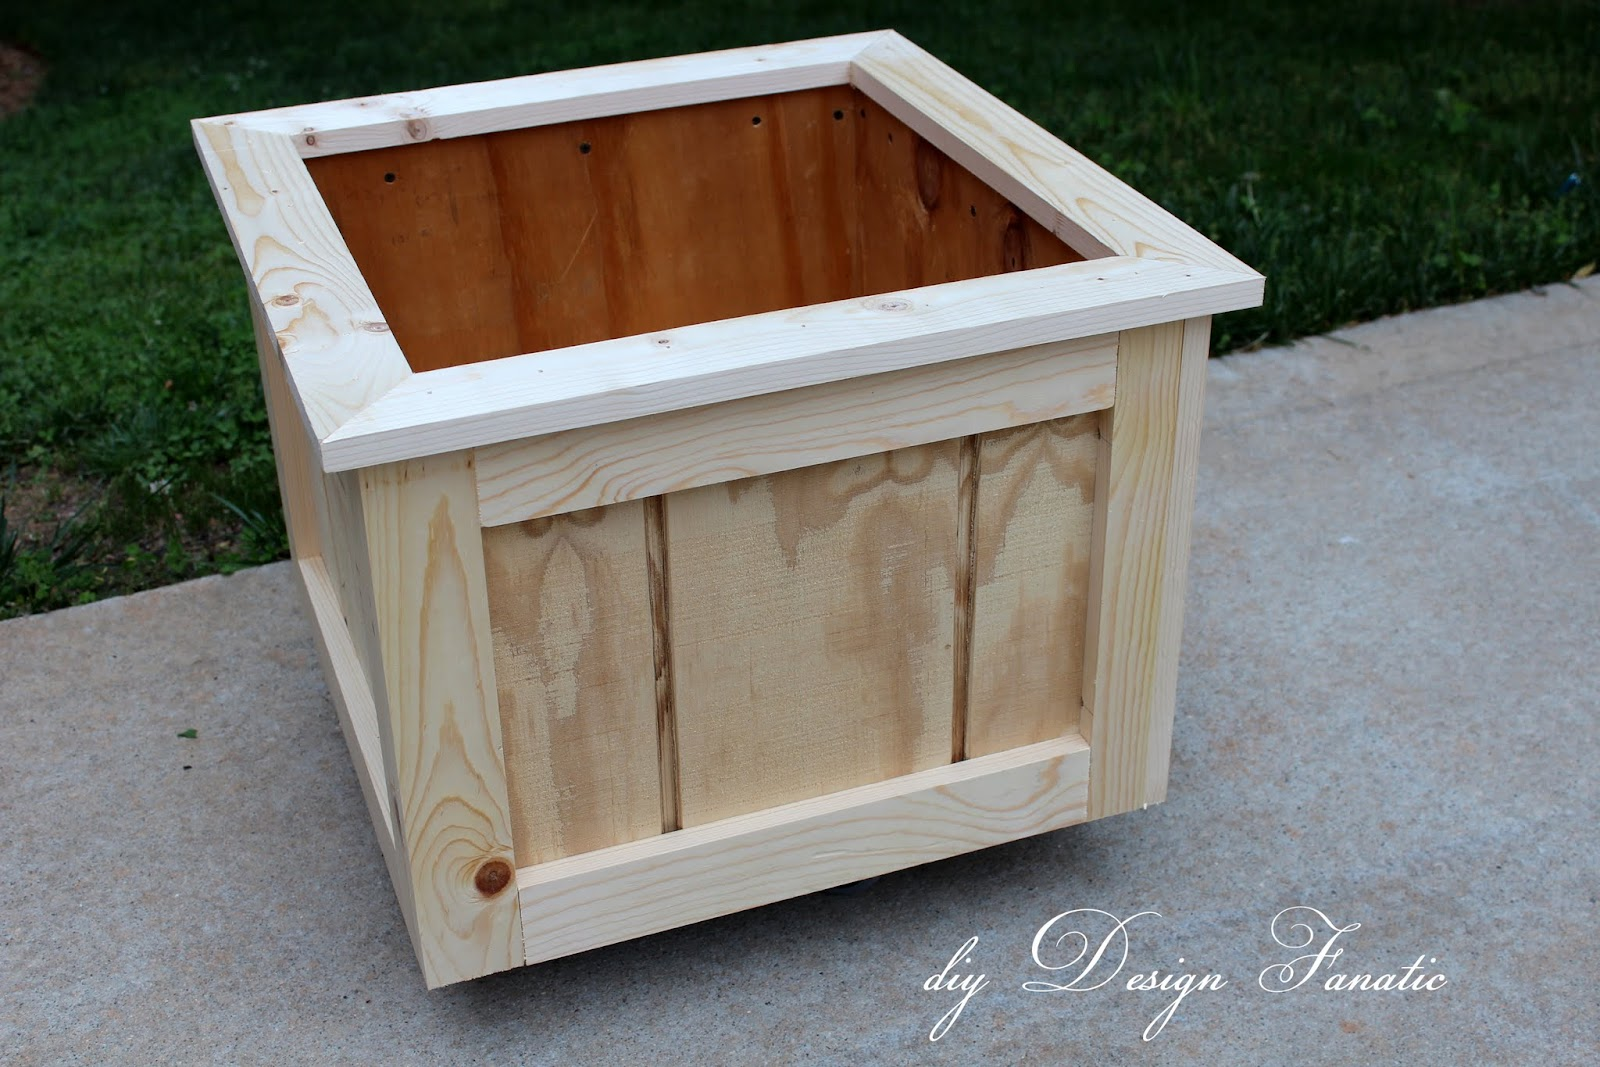 diy Design Fanatic: How To Make A Wood Planter Box